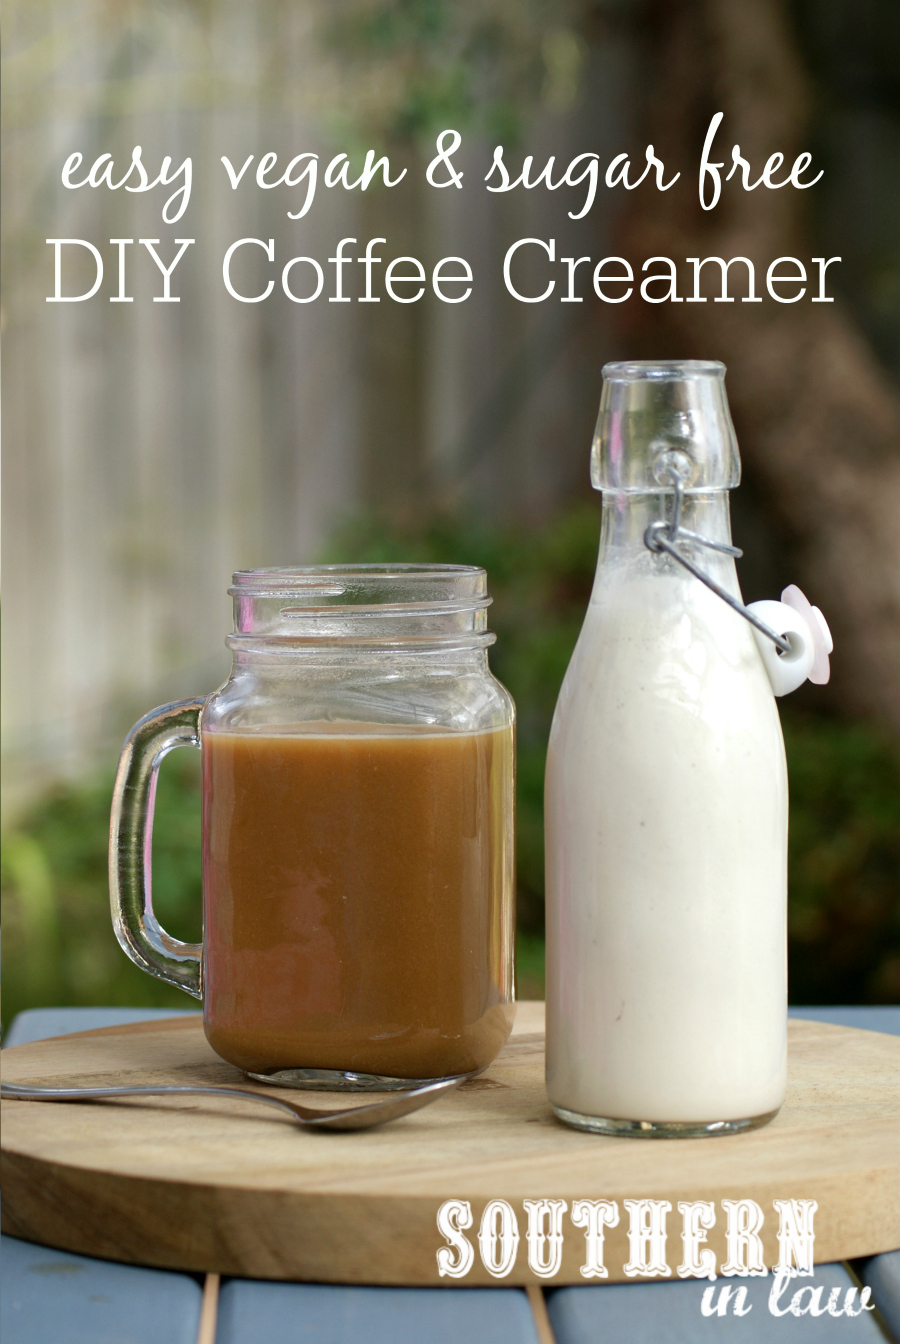 Easy Vegan Homemade Coffee Creamer Recipe makes about 2 cups